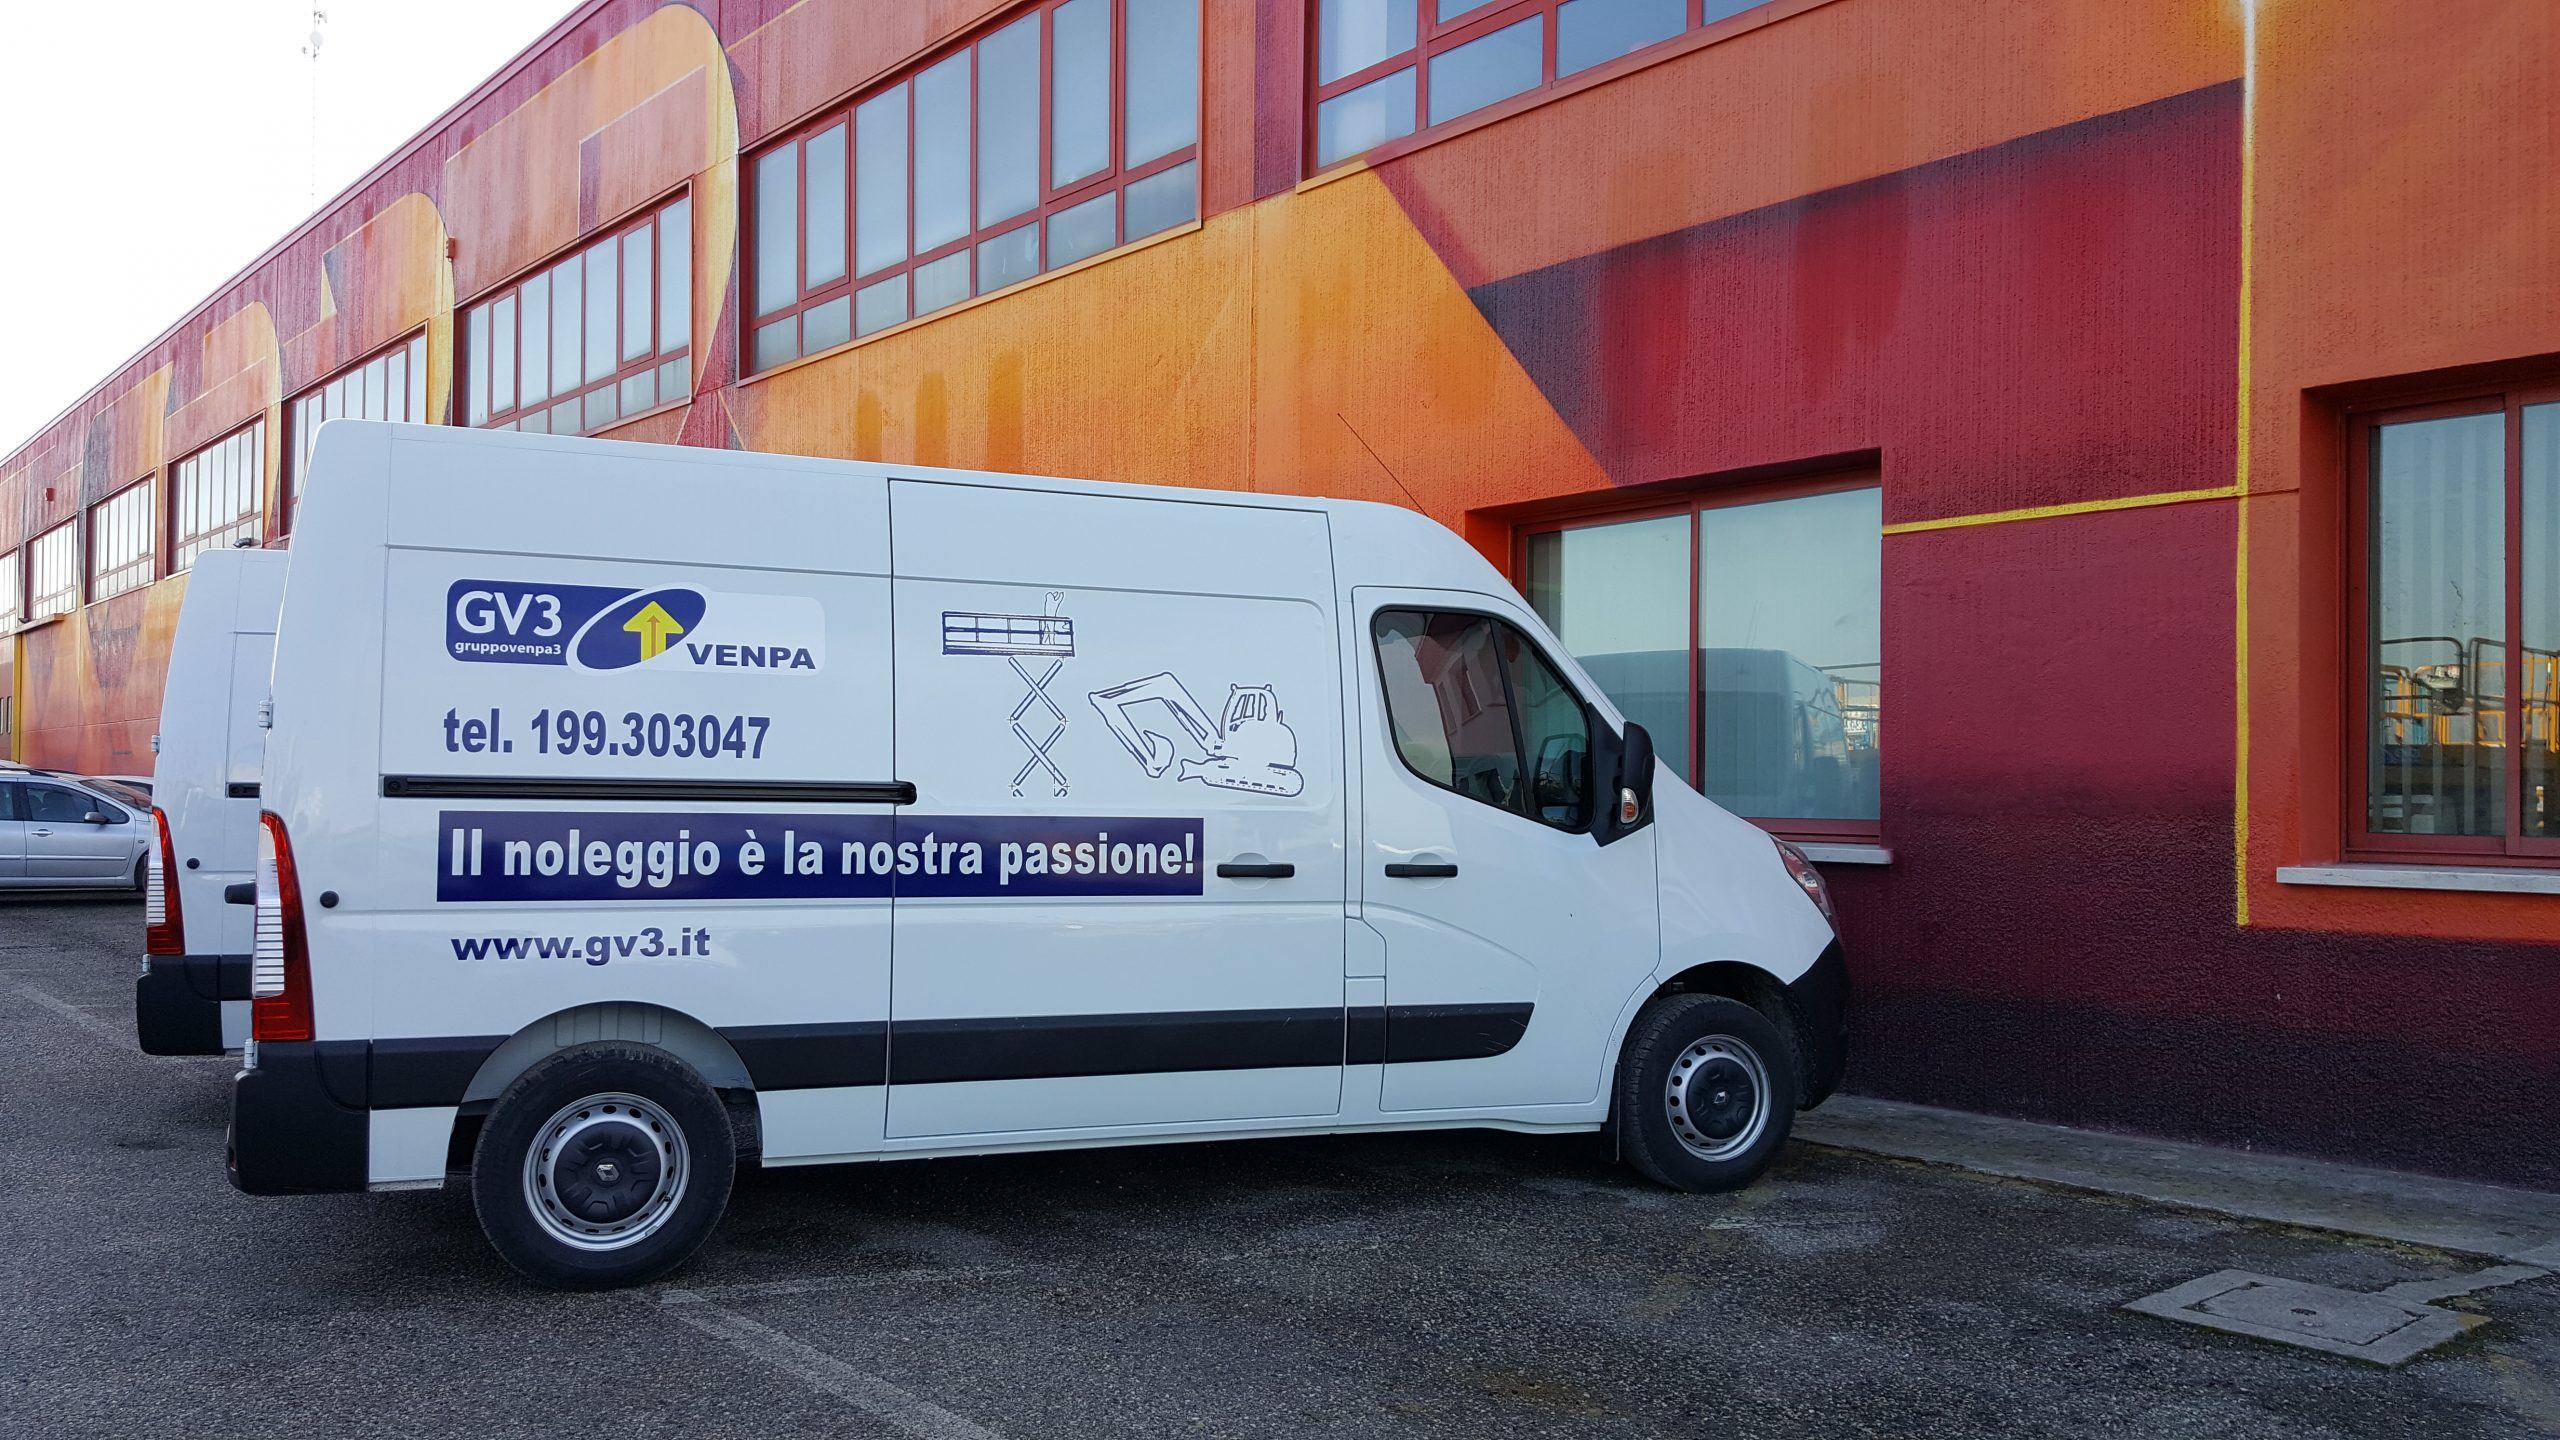 Officina Mobile per la pronta assistenza in cantiere - First Care Venpa